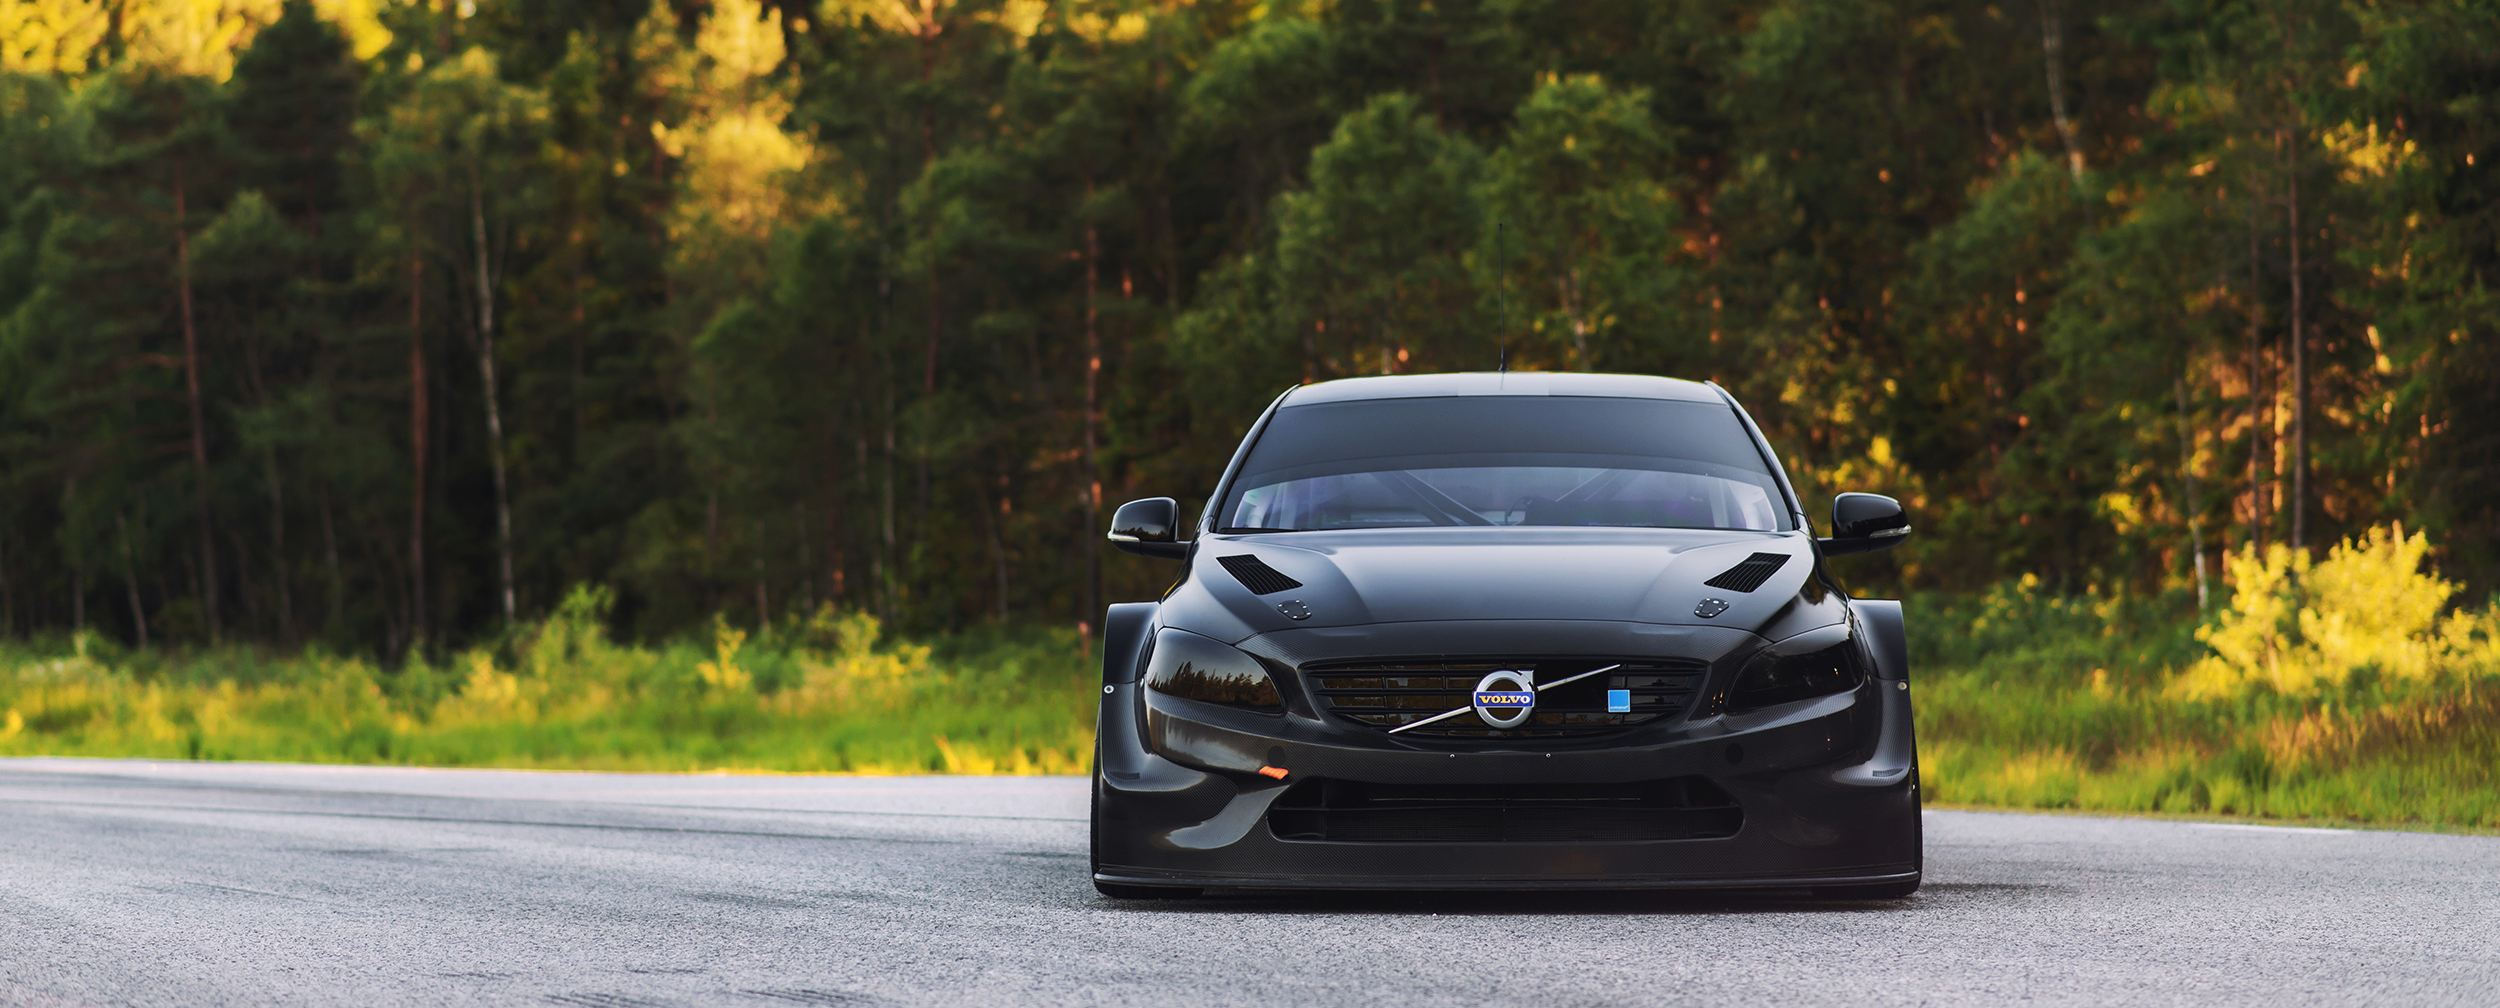 POLESTAR TO FLY THE VOLVO FLAG IN THE WTCC | Federation Internationale de l'Automobile